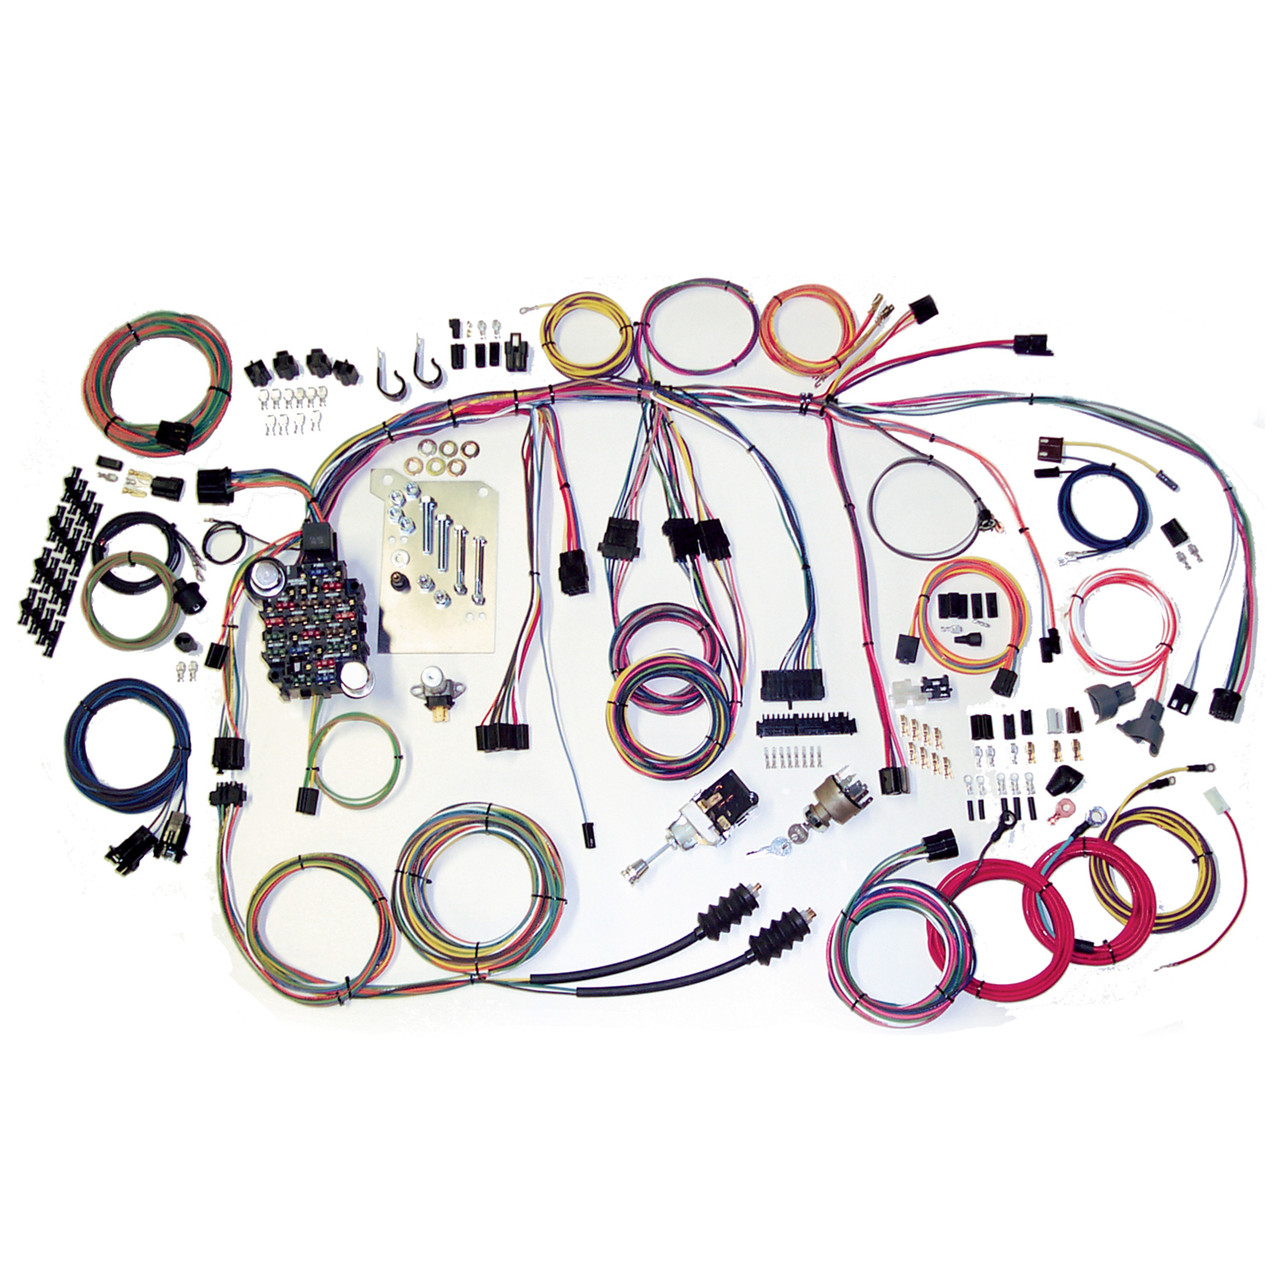 hight resolution of american autowire 1960 1966 chevrolet truck classic update 1960 chevy c10 wiring harness 1960 chevy c10 wiring harness